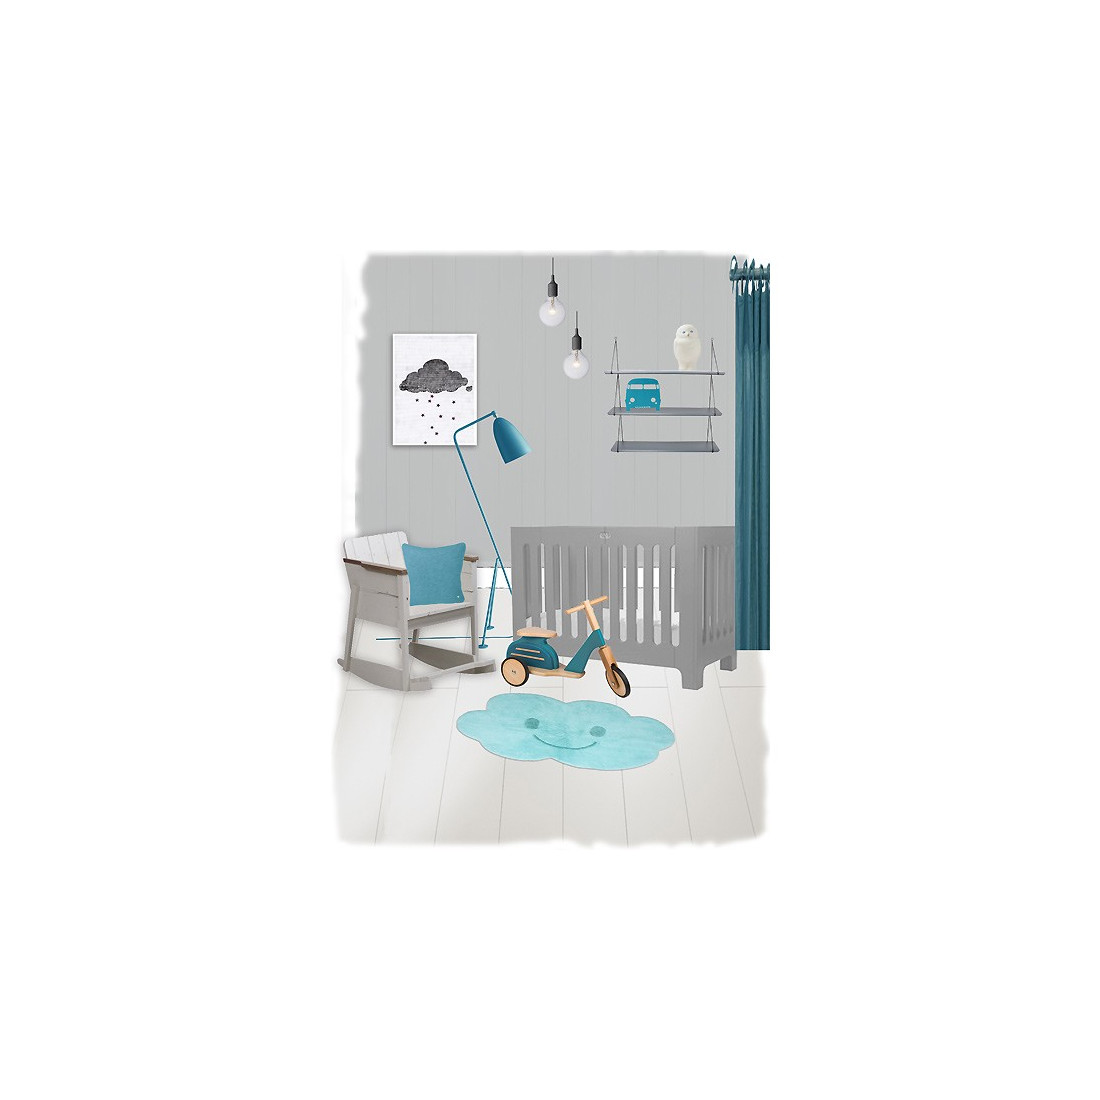 tapis enfant lavable nuage bleu nimbus nattiot ma chambramoi. Black Bedroom Furniture Sets. Home Design Ideas